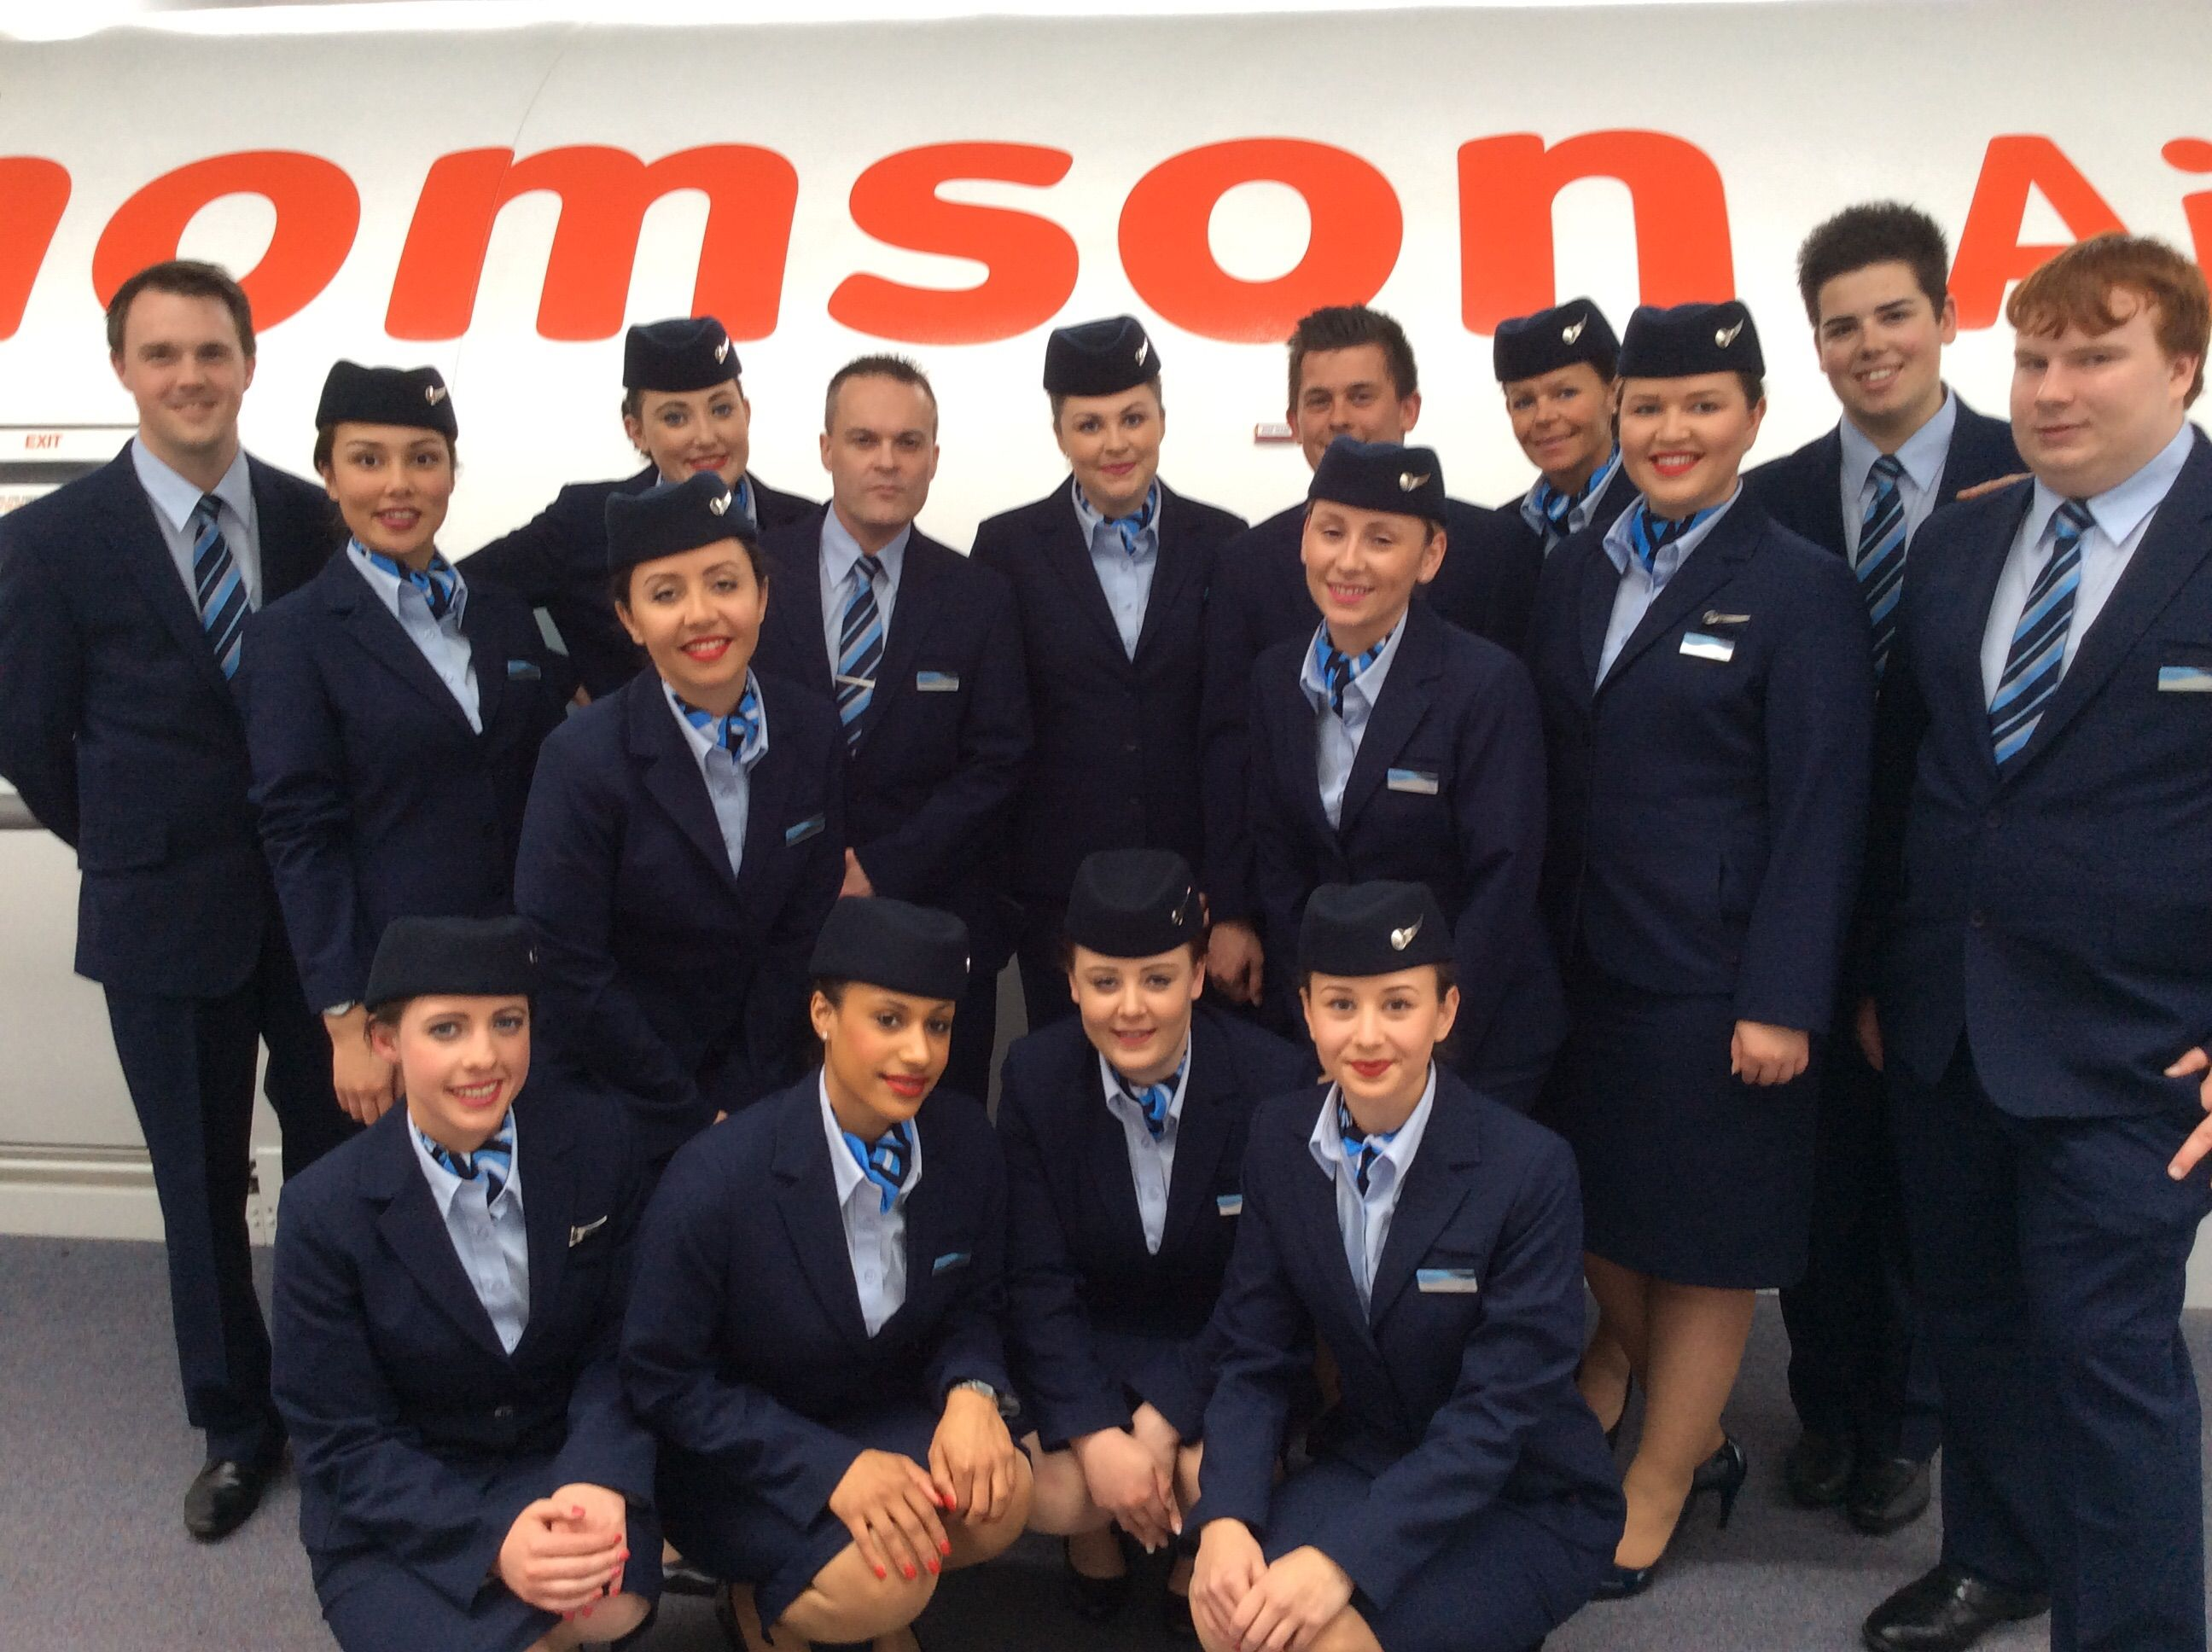 airline jobs ideas on pinterest looking for work our new starters lgw cabin crew looking smart in their - Airline Management Jobs